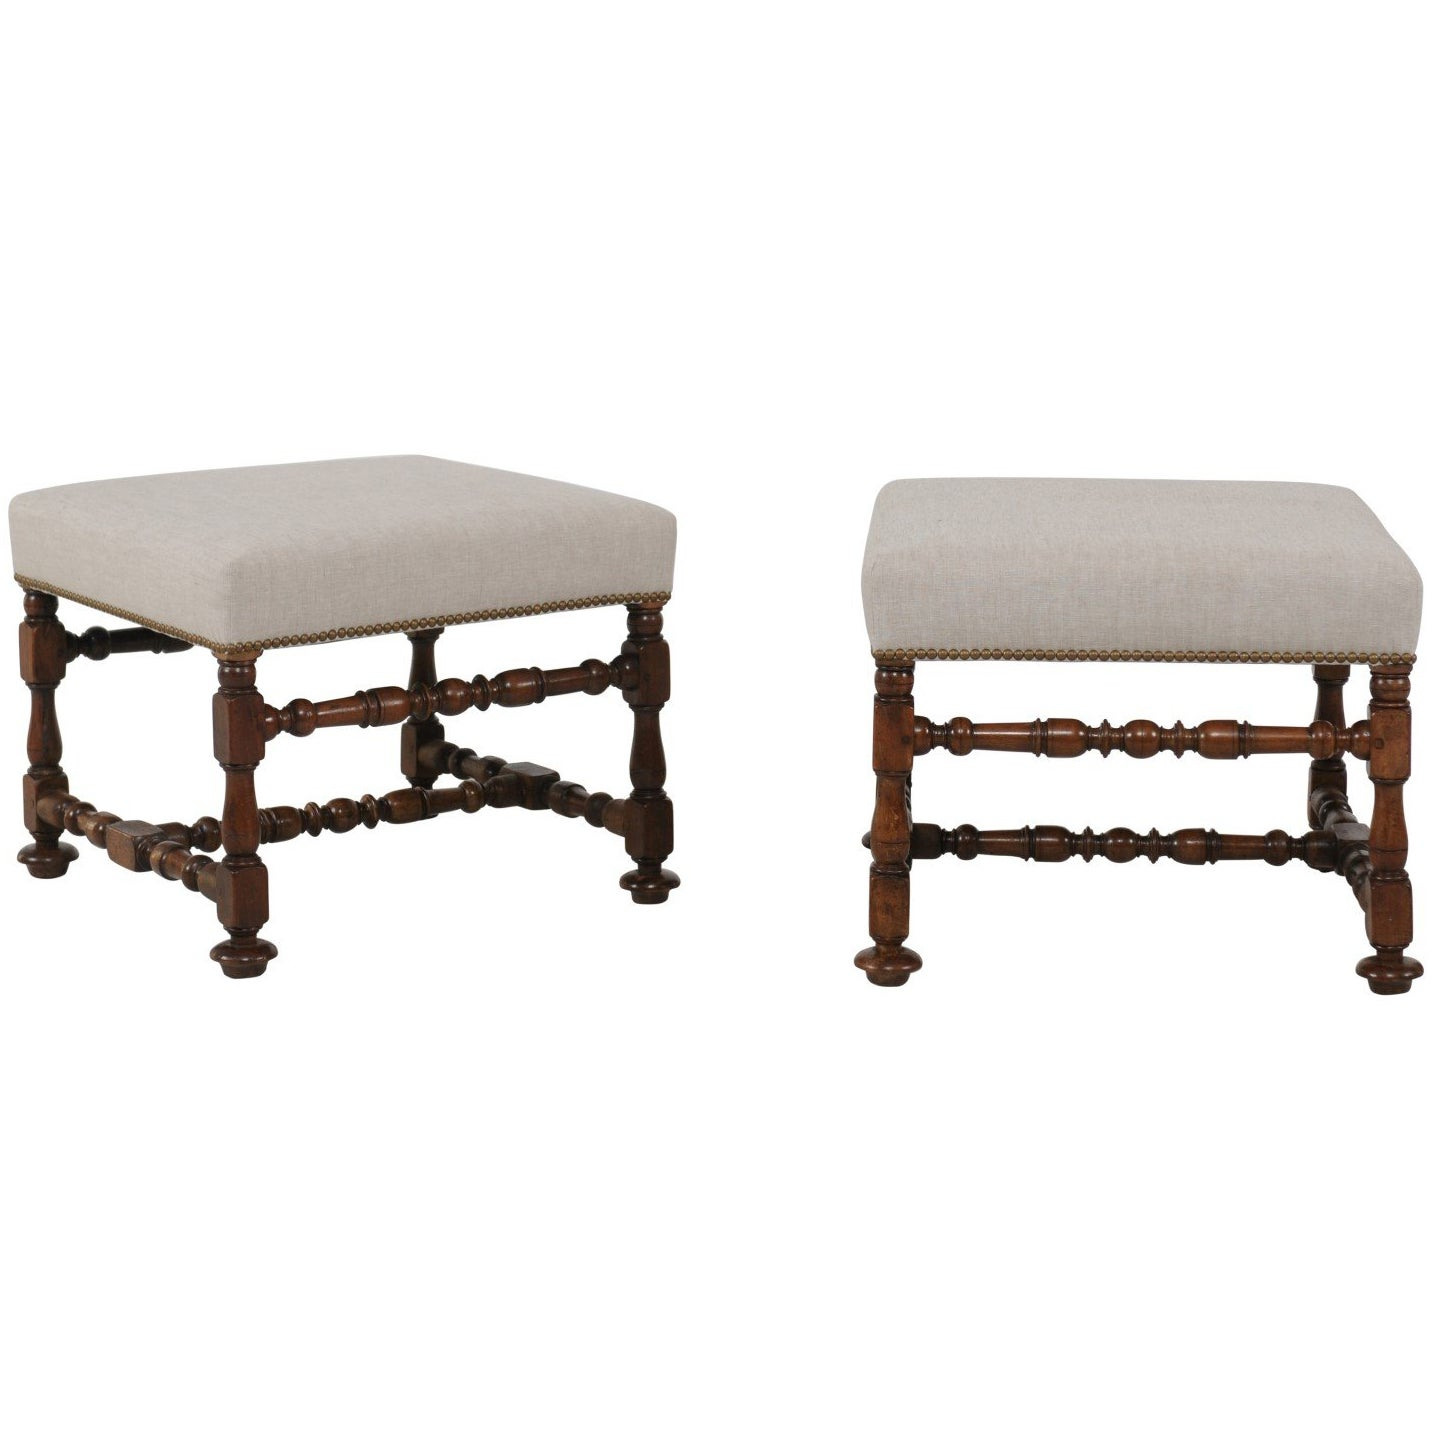 Pair of English 1870s Walnut Stools with Turned Legs and Newly Upholstered Seats